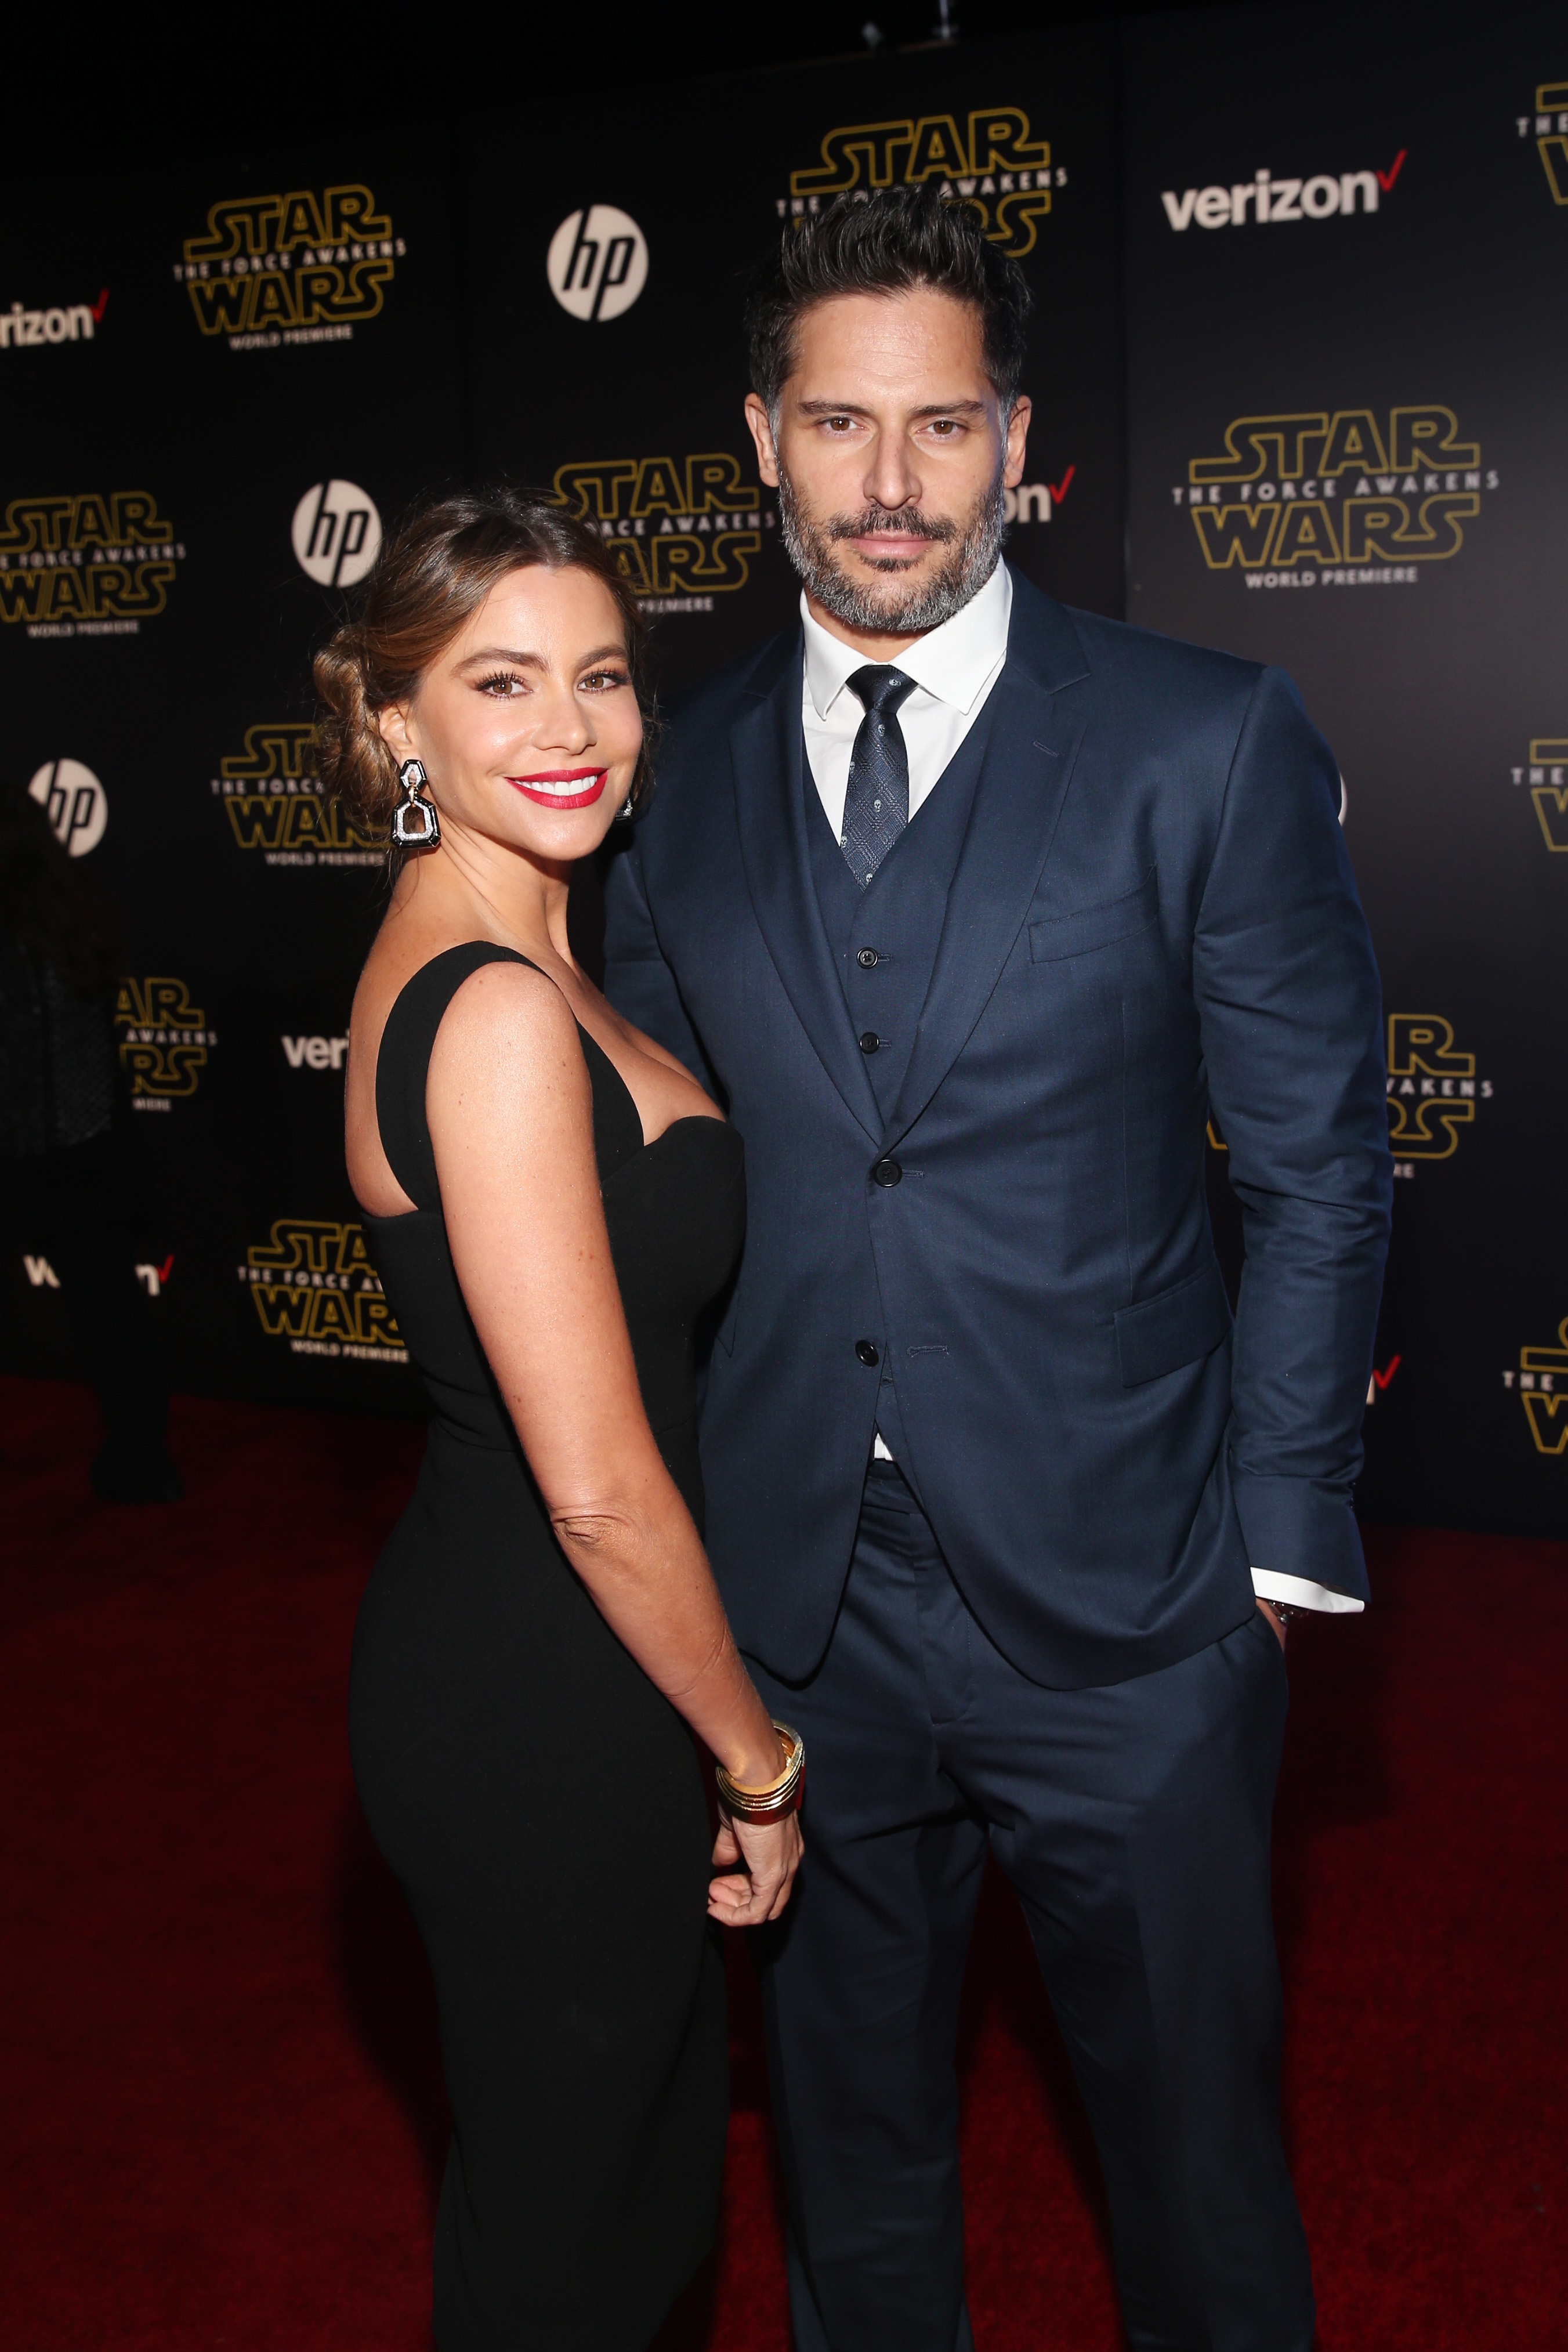 HOLLYWOOD, CA - DECEMBER 14:  Actors Sof?a Vergara (L) and Joe Manganiello attend the World Premiere of ?Star Wars: The Force Awakens? at the Dolby, El Capitan, and TCL Theatres on December 14, 2015 in Hollywood, California.  (Photo by Jesse Grant/Getty Images for Disney) *** Local Caption *** Sof?a Vergara;Joe Manganiello